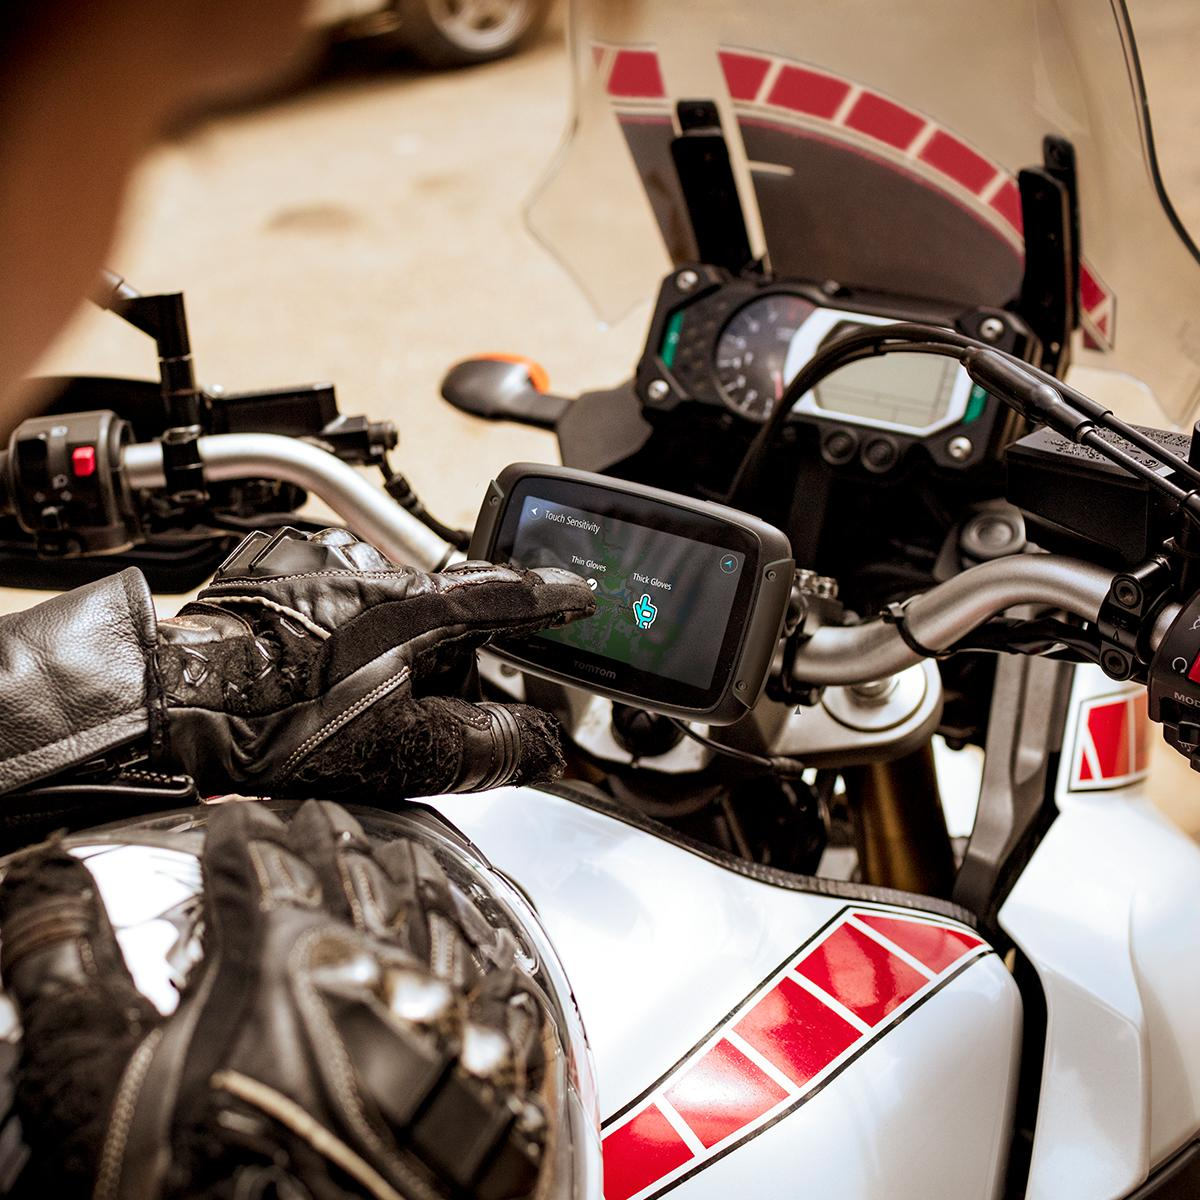 tomtom rider 500 motorrad navi 4 3 zoll mit kurvigen und. Black Bedroom Furniture Sets. Home Design Ideas